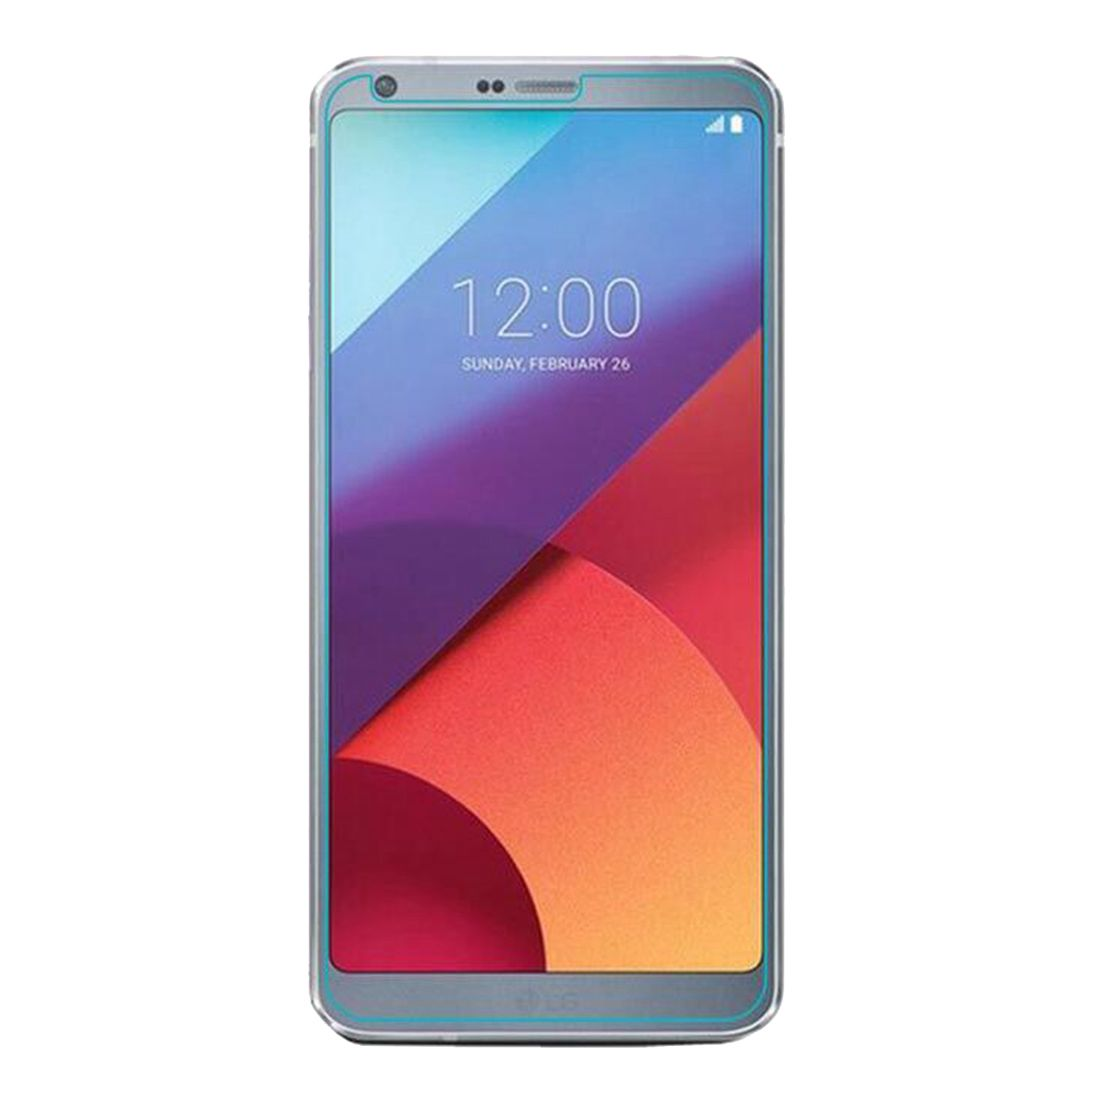 HFES New 3pcs Tempered Glass Screen Protector, Anti-Scratch, Anti-Fingerprint, Bubble Free for LG G6